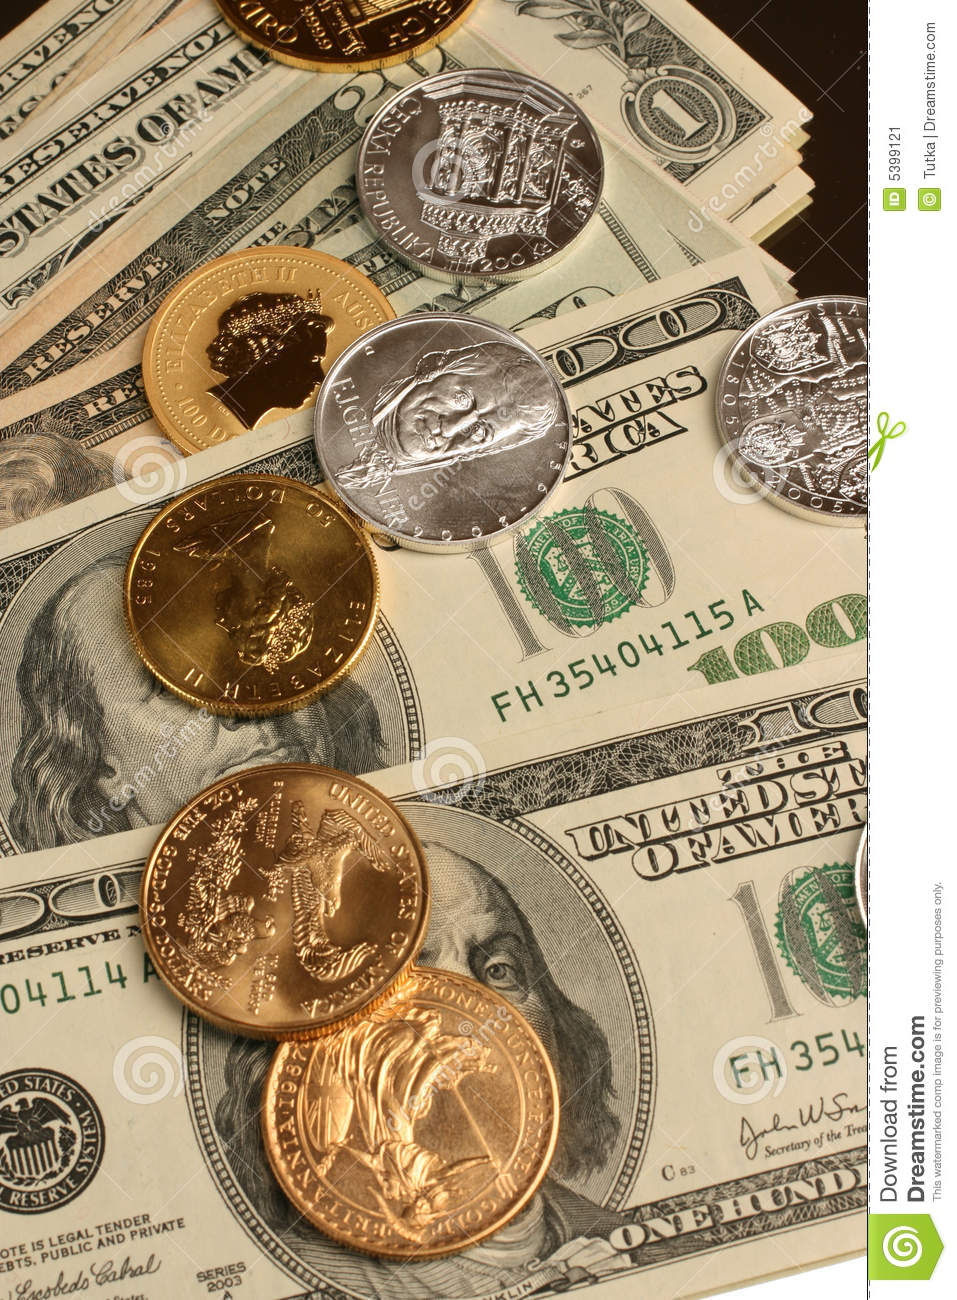 Gold And Silver Coins And Paper Money Stock Image - Image: 5399121